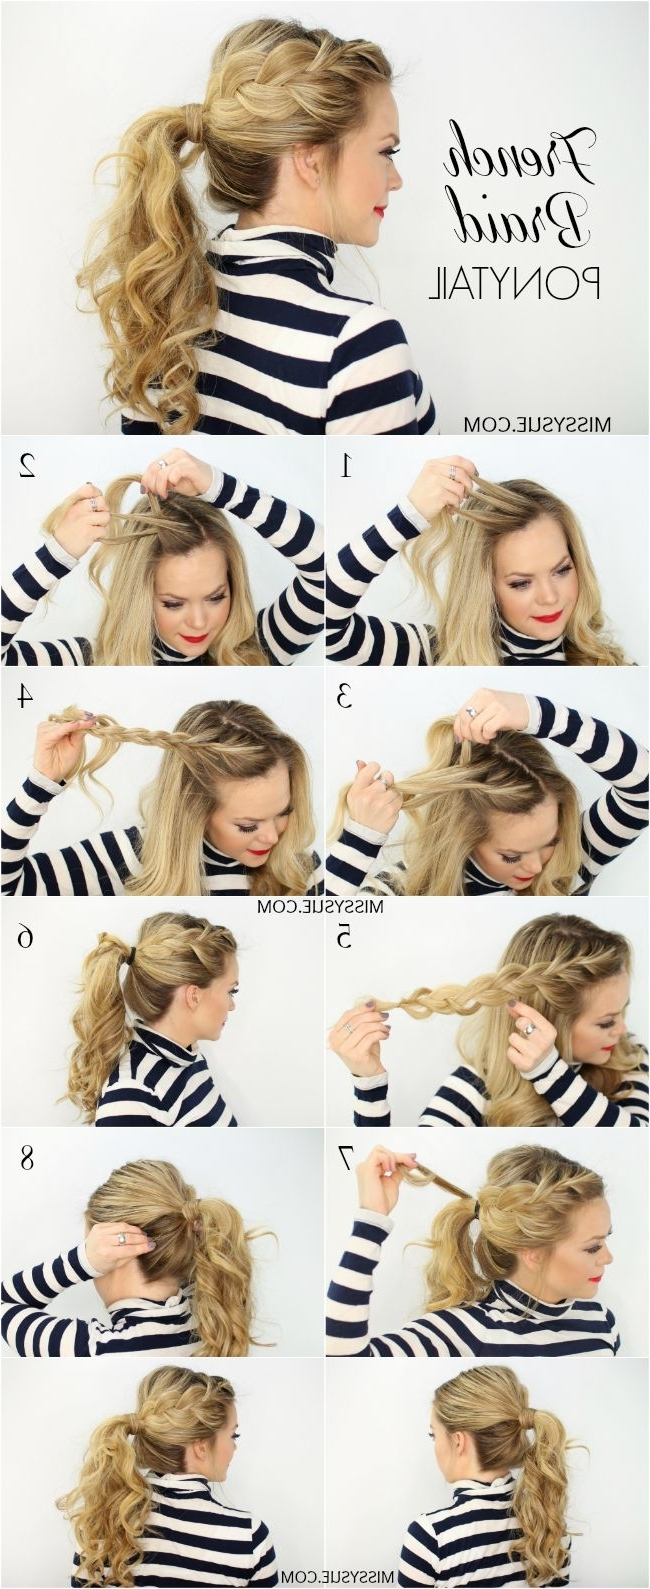 Current Messy Side Braided Ponytail Hairstyles Pertaining To 15 Adorable French Braid Ponytails For Long Hair – Popular Haircuts (View 10 of 20)